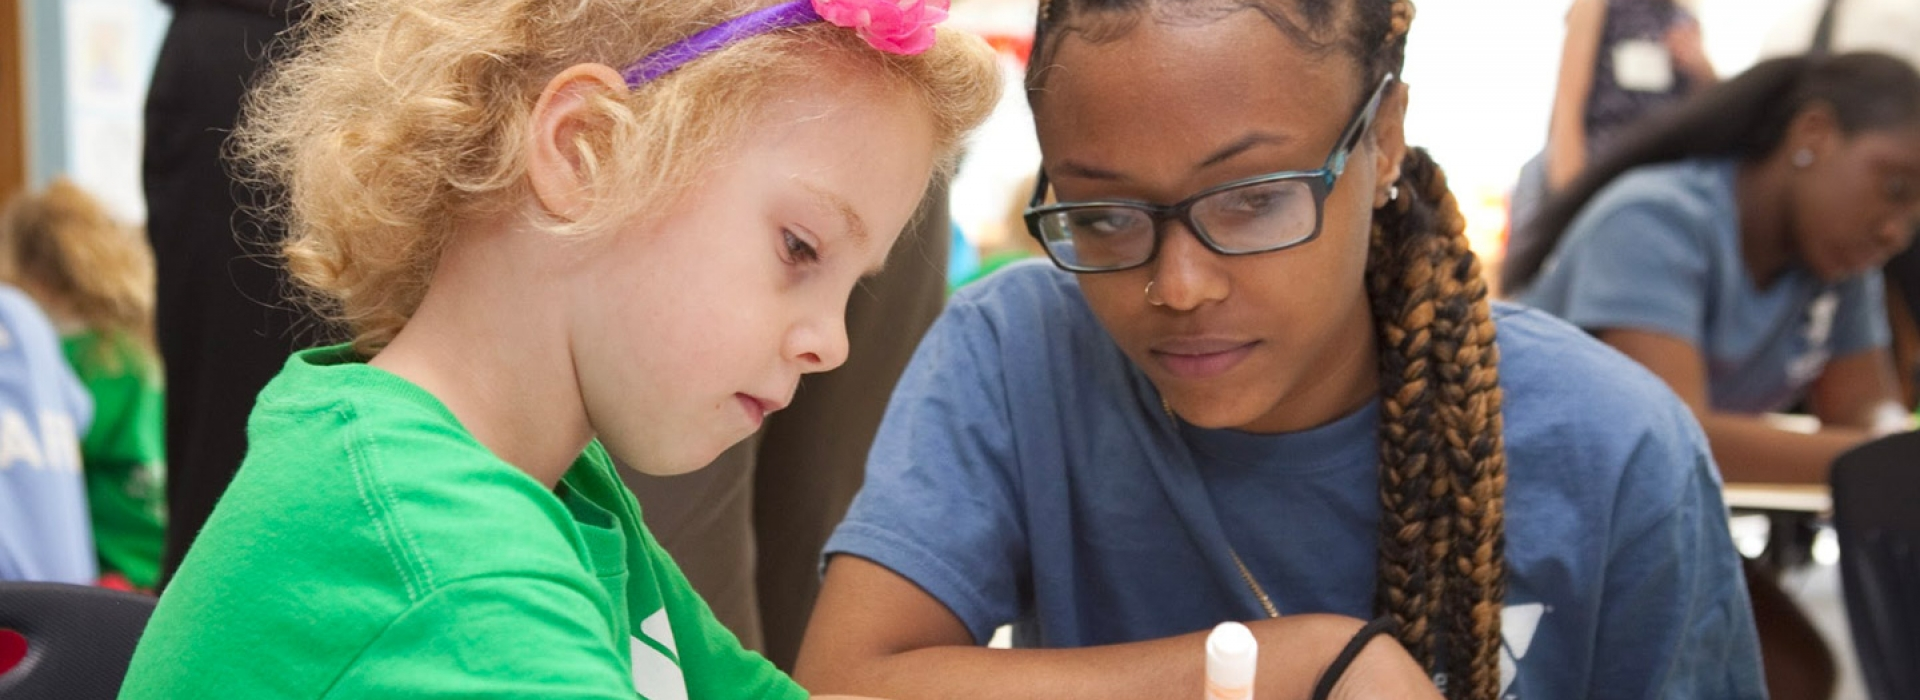 Summer Camp for Manhattan Kids at the McBurney YMCA